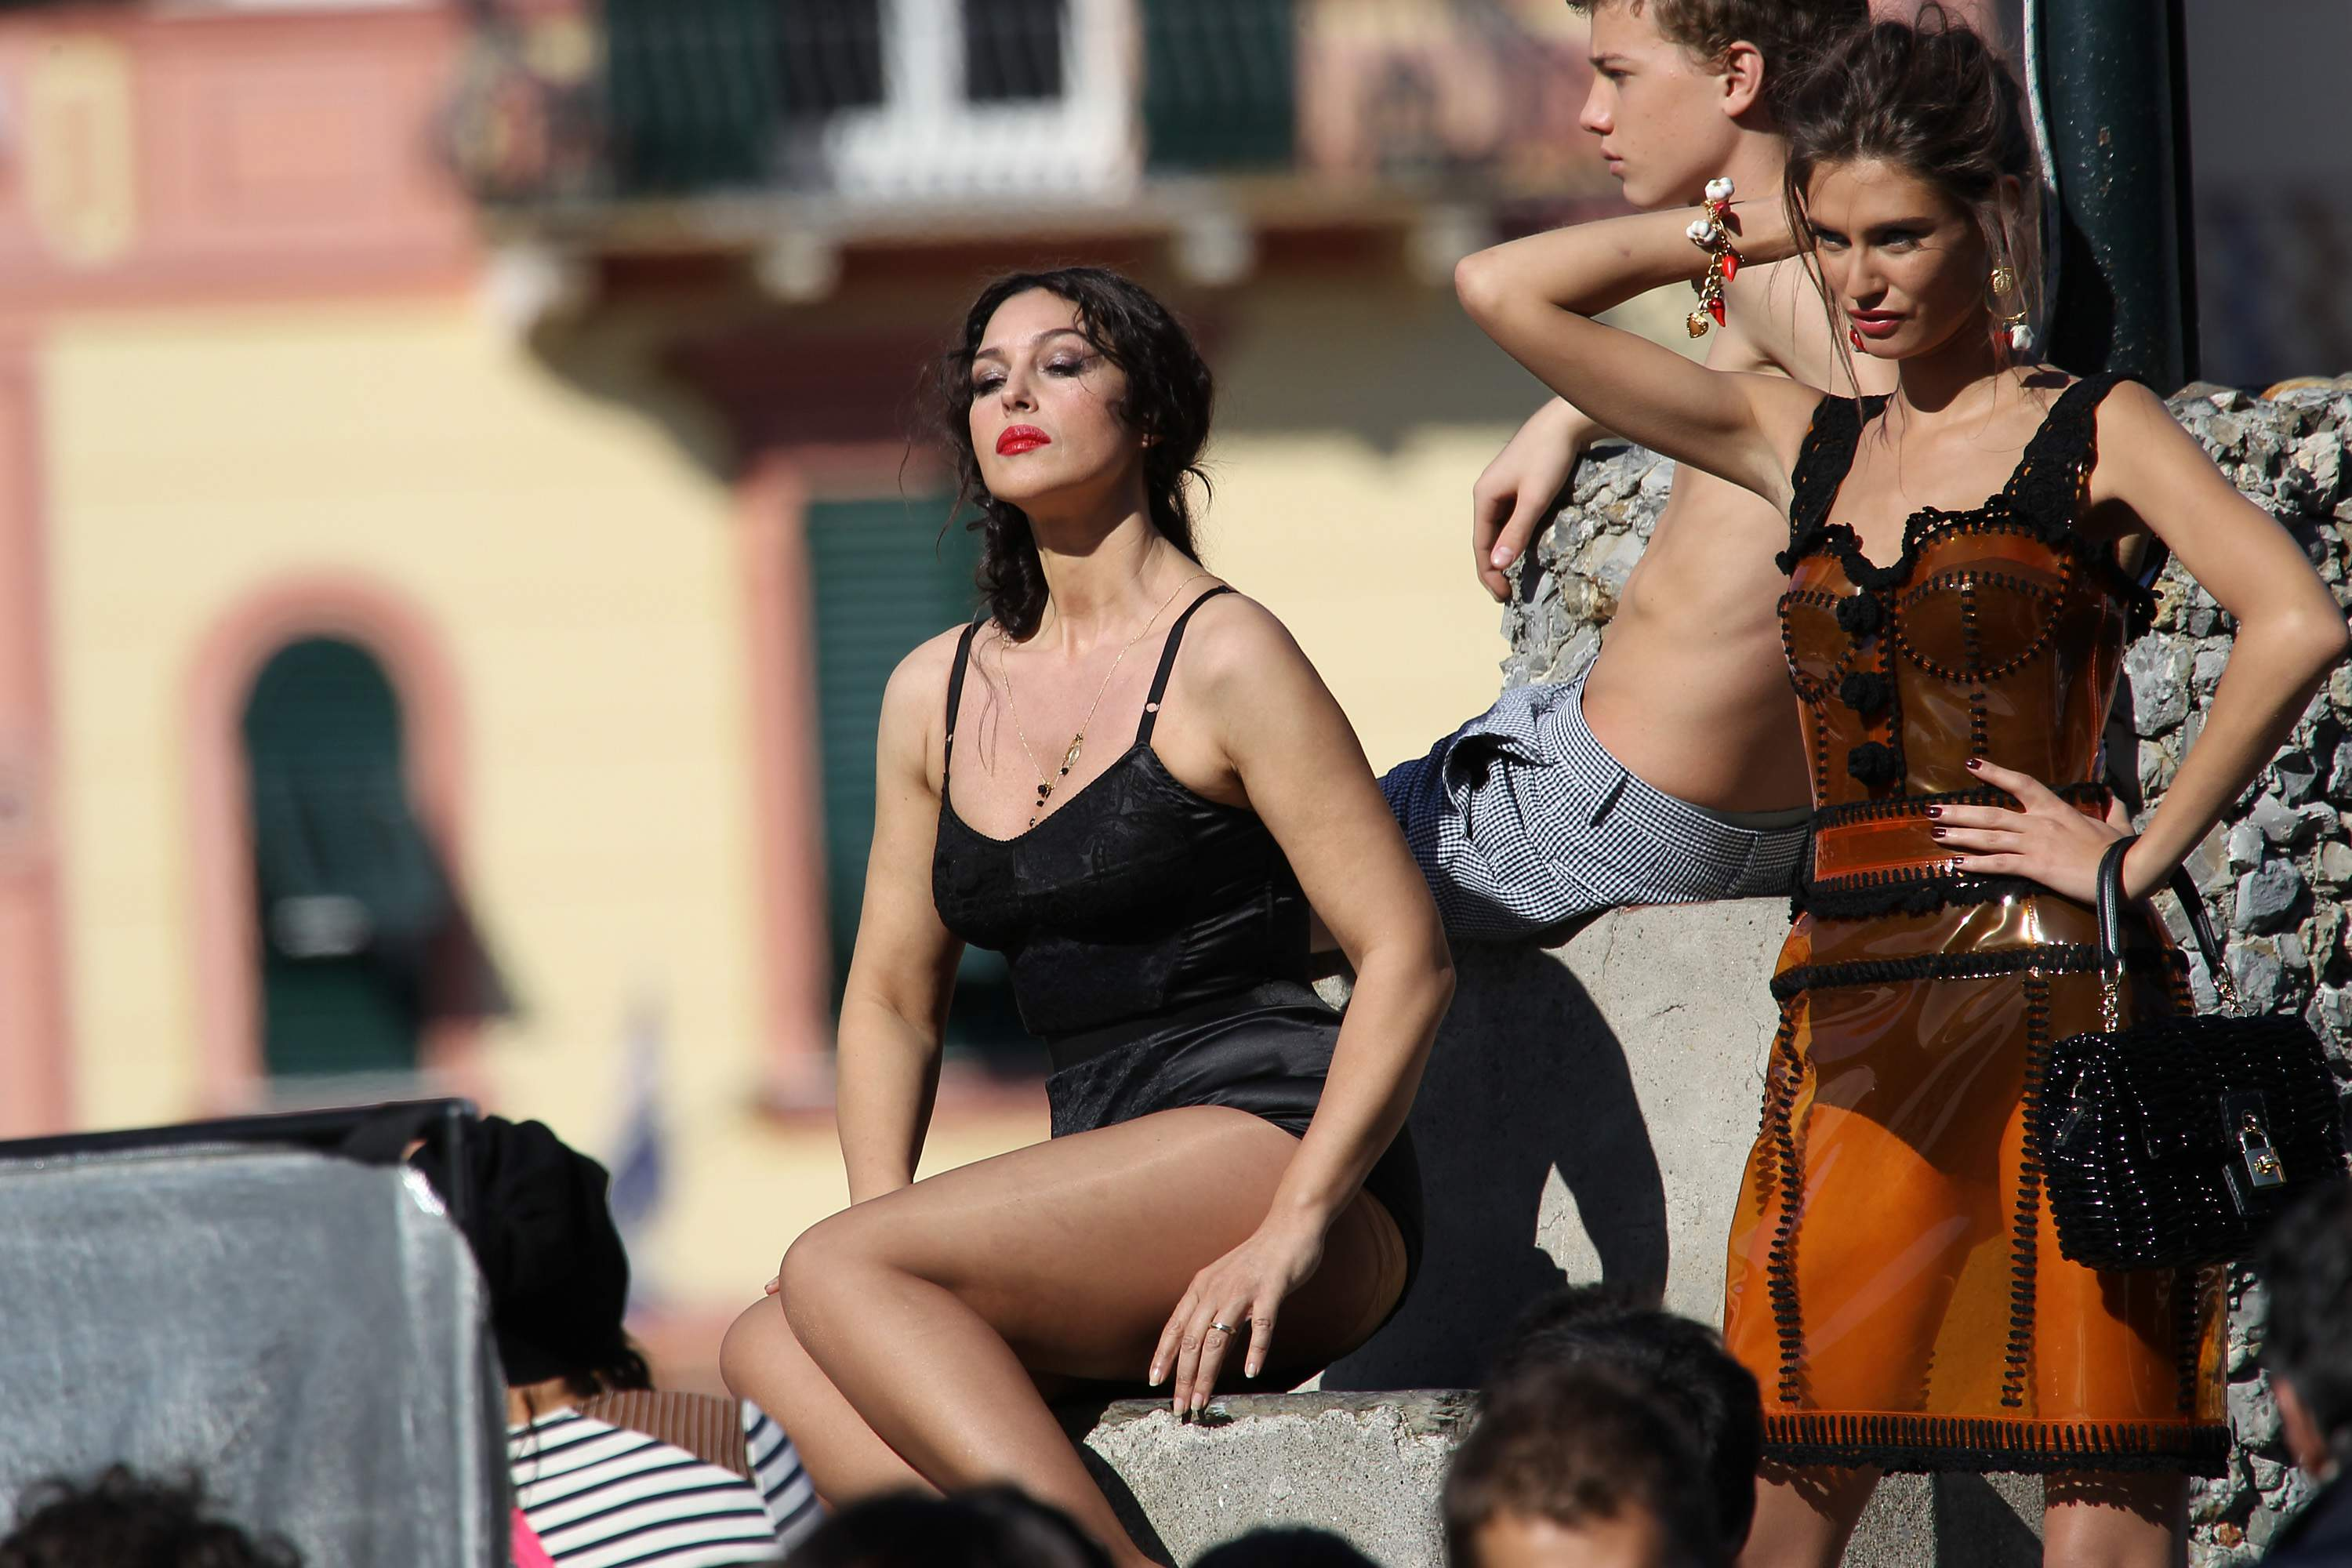 Monica Bellucci - Cleavage Candids On The Set of Dolce and Gabbana-04 ... Monica Bellucci